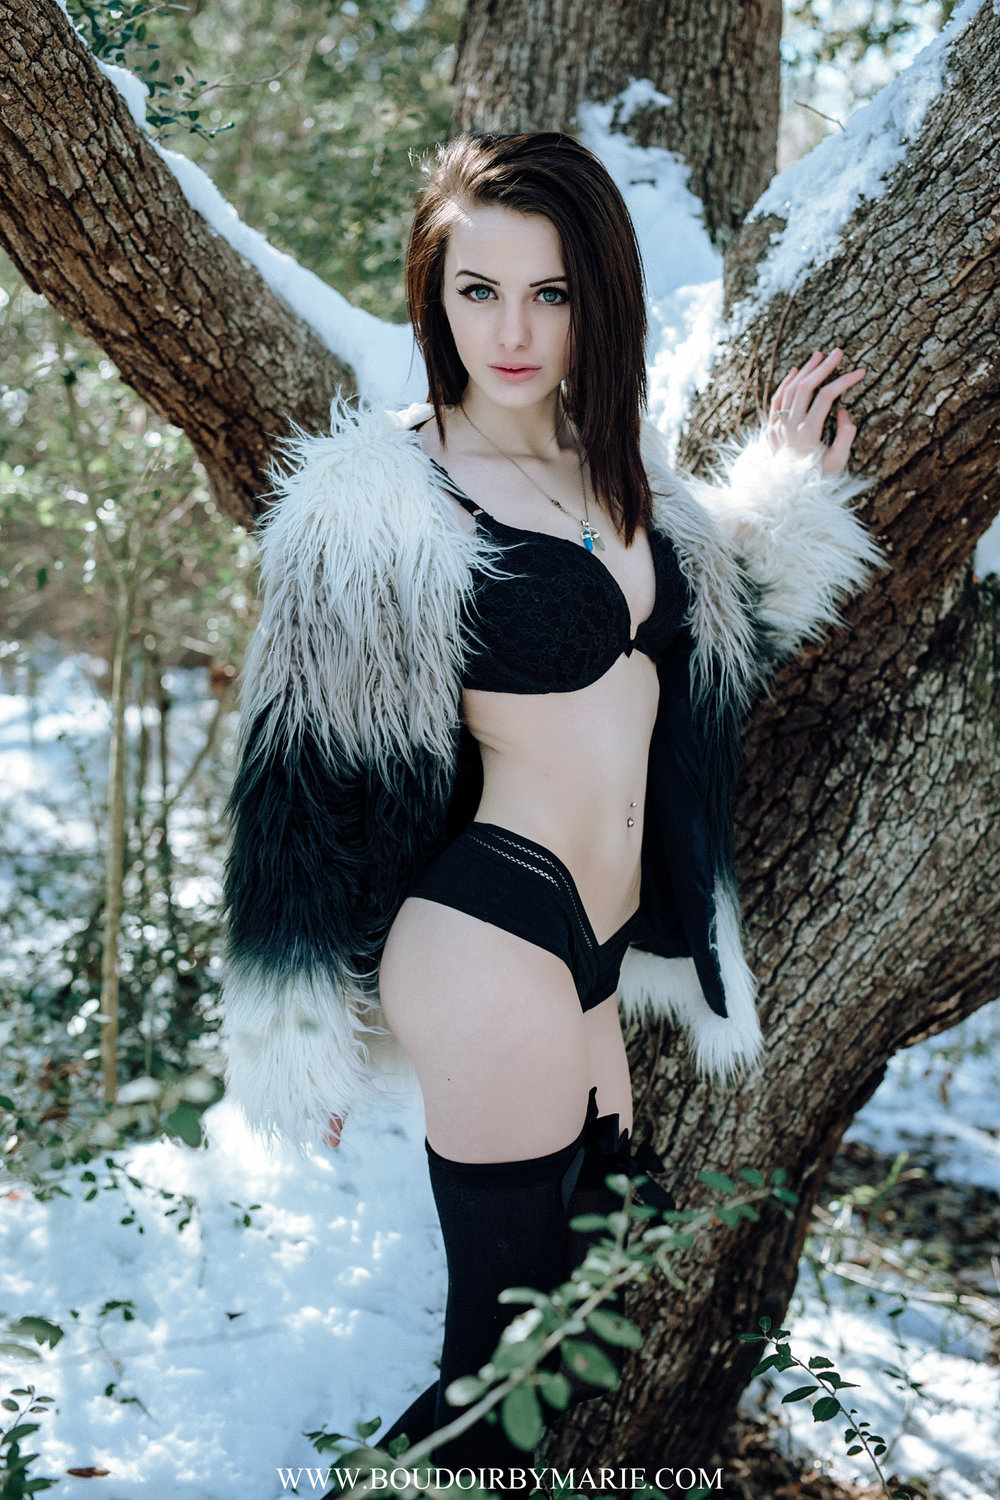 Outdoor snow boudoir photo of girl in black bra and panty set.